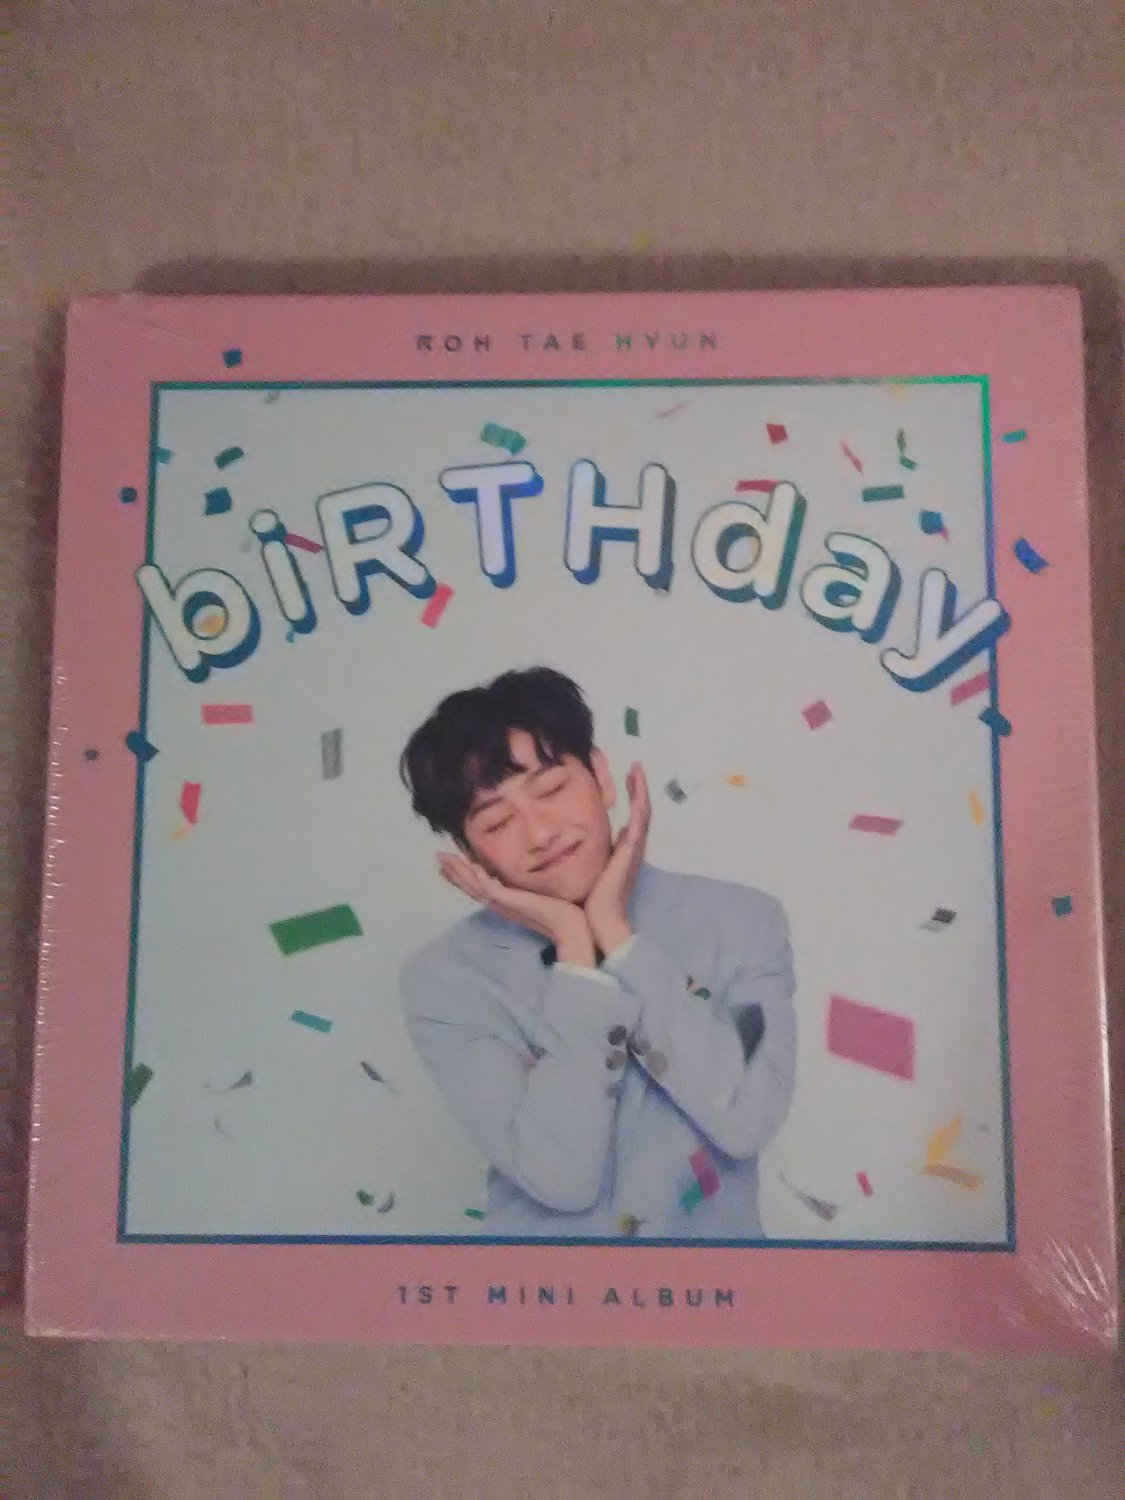 Roh Tae Hyun- 1St Mini Album: Birthday